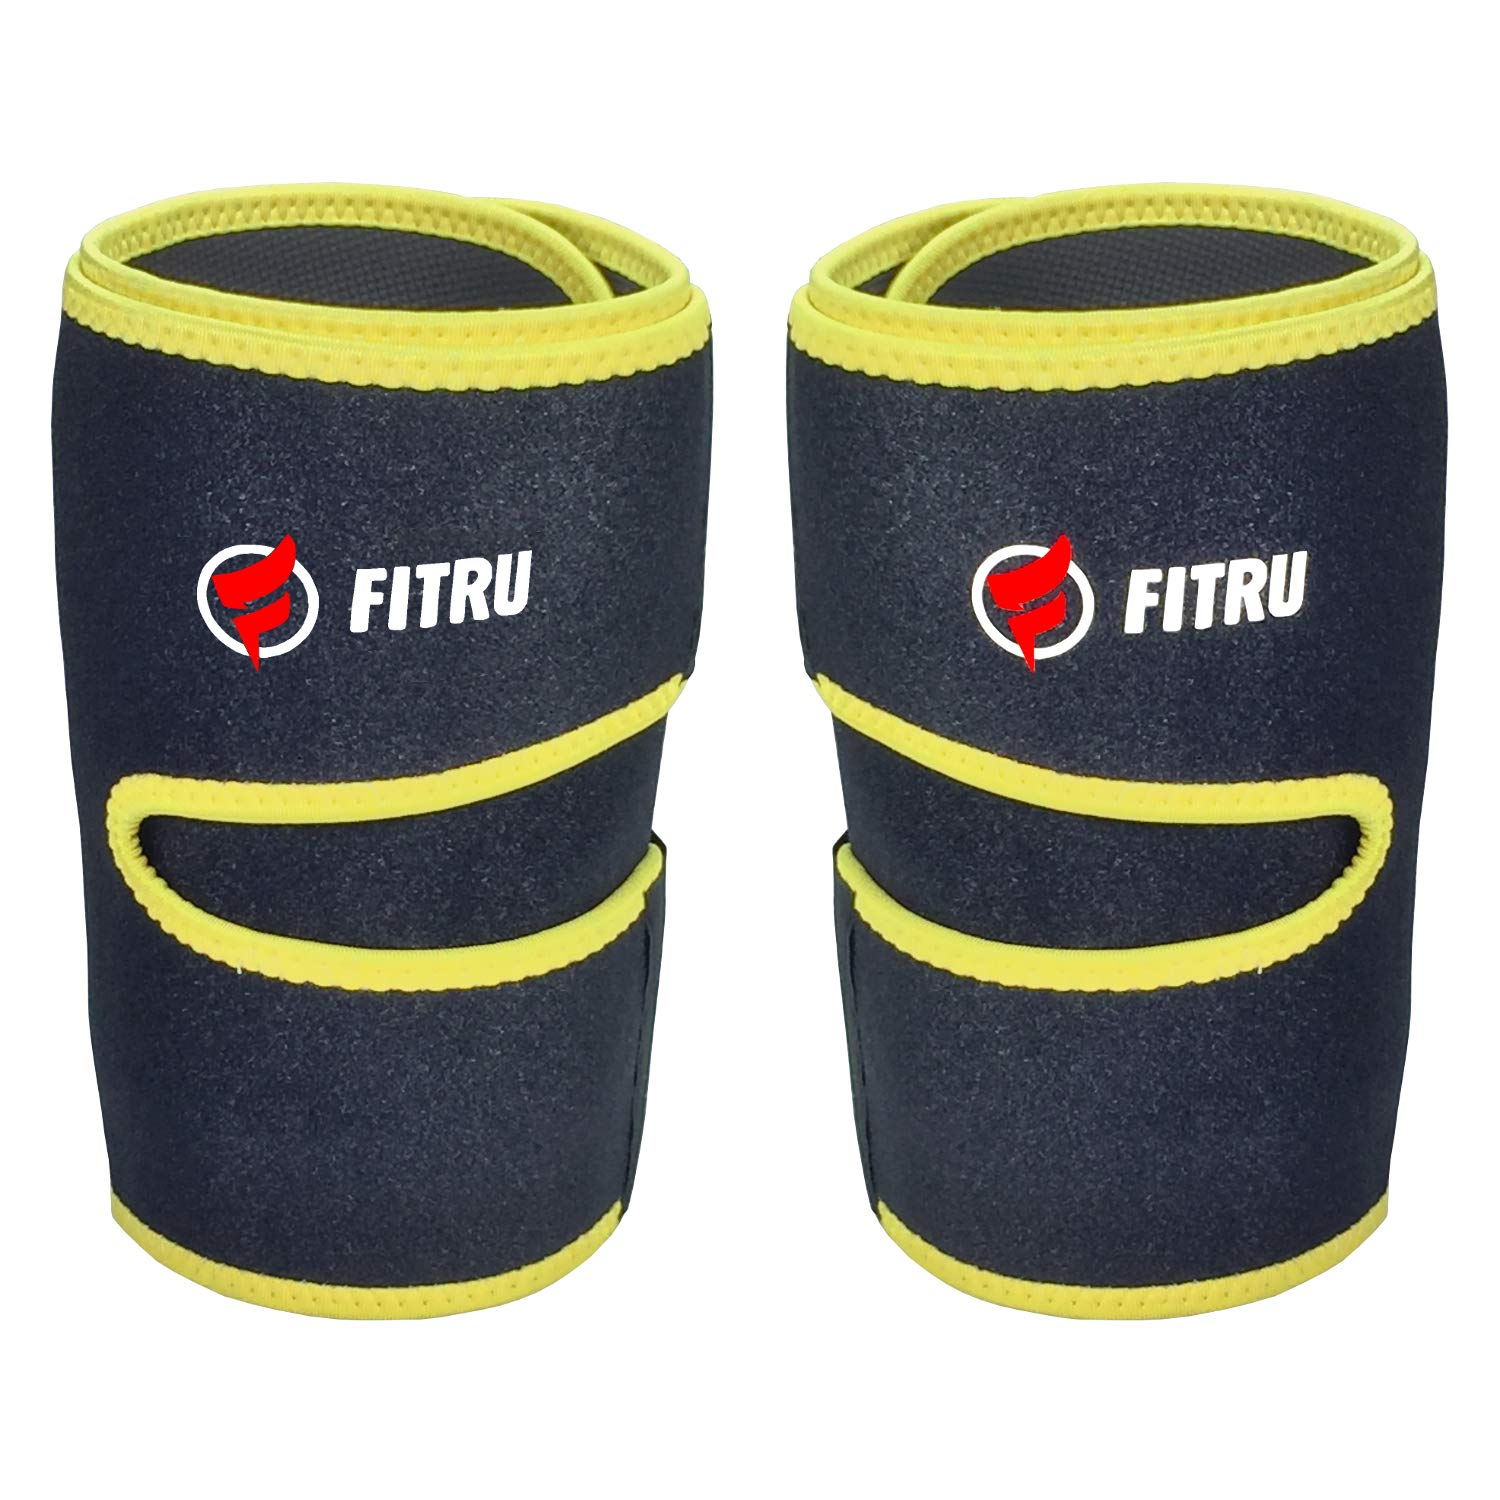 Fitru Premium Thigh Trimmers for Men & Women | Increase Sweating & Circulation | Like A Body Wrap Sauna Waist Trainer for Your Legs (Yellow, M: 31'' X 8'')